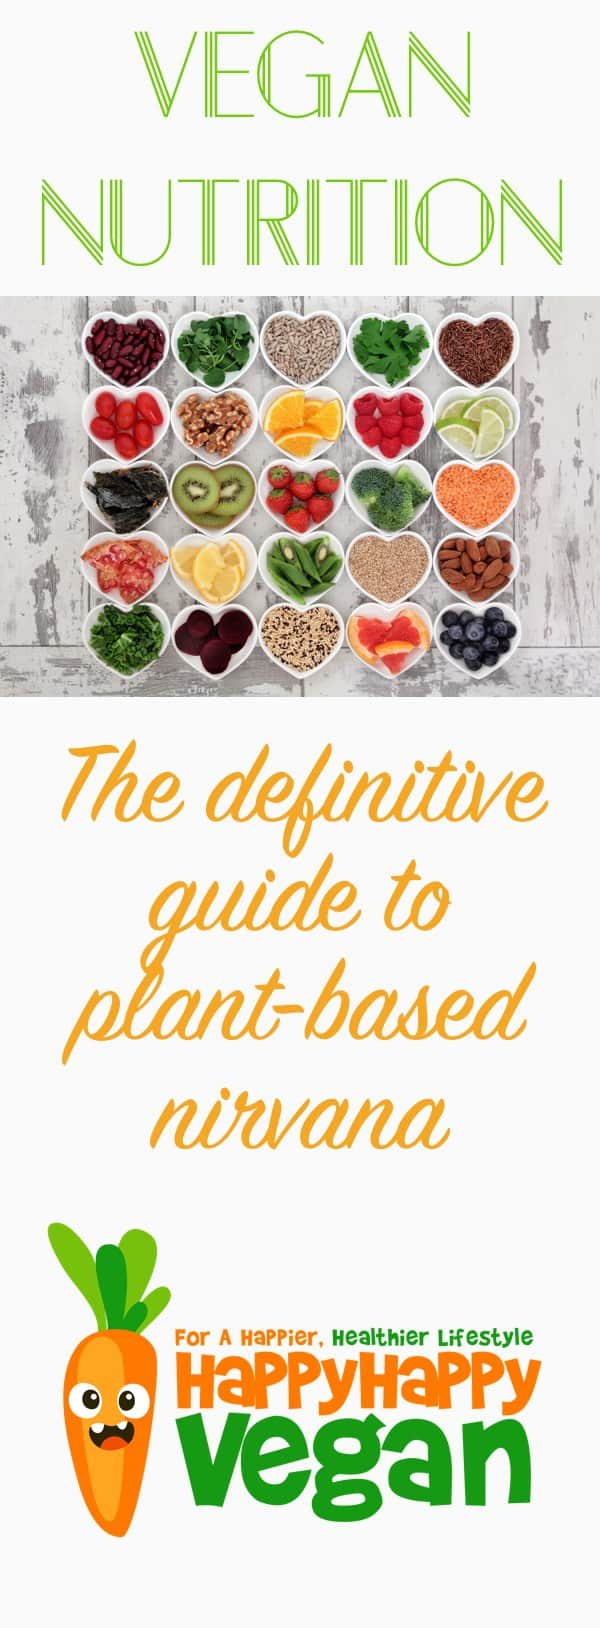 Vegan nutrition guide: The only post you need to find plant-based nirvana.